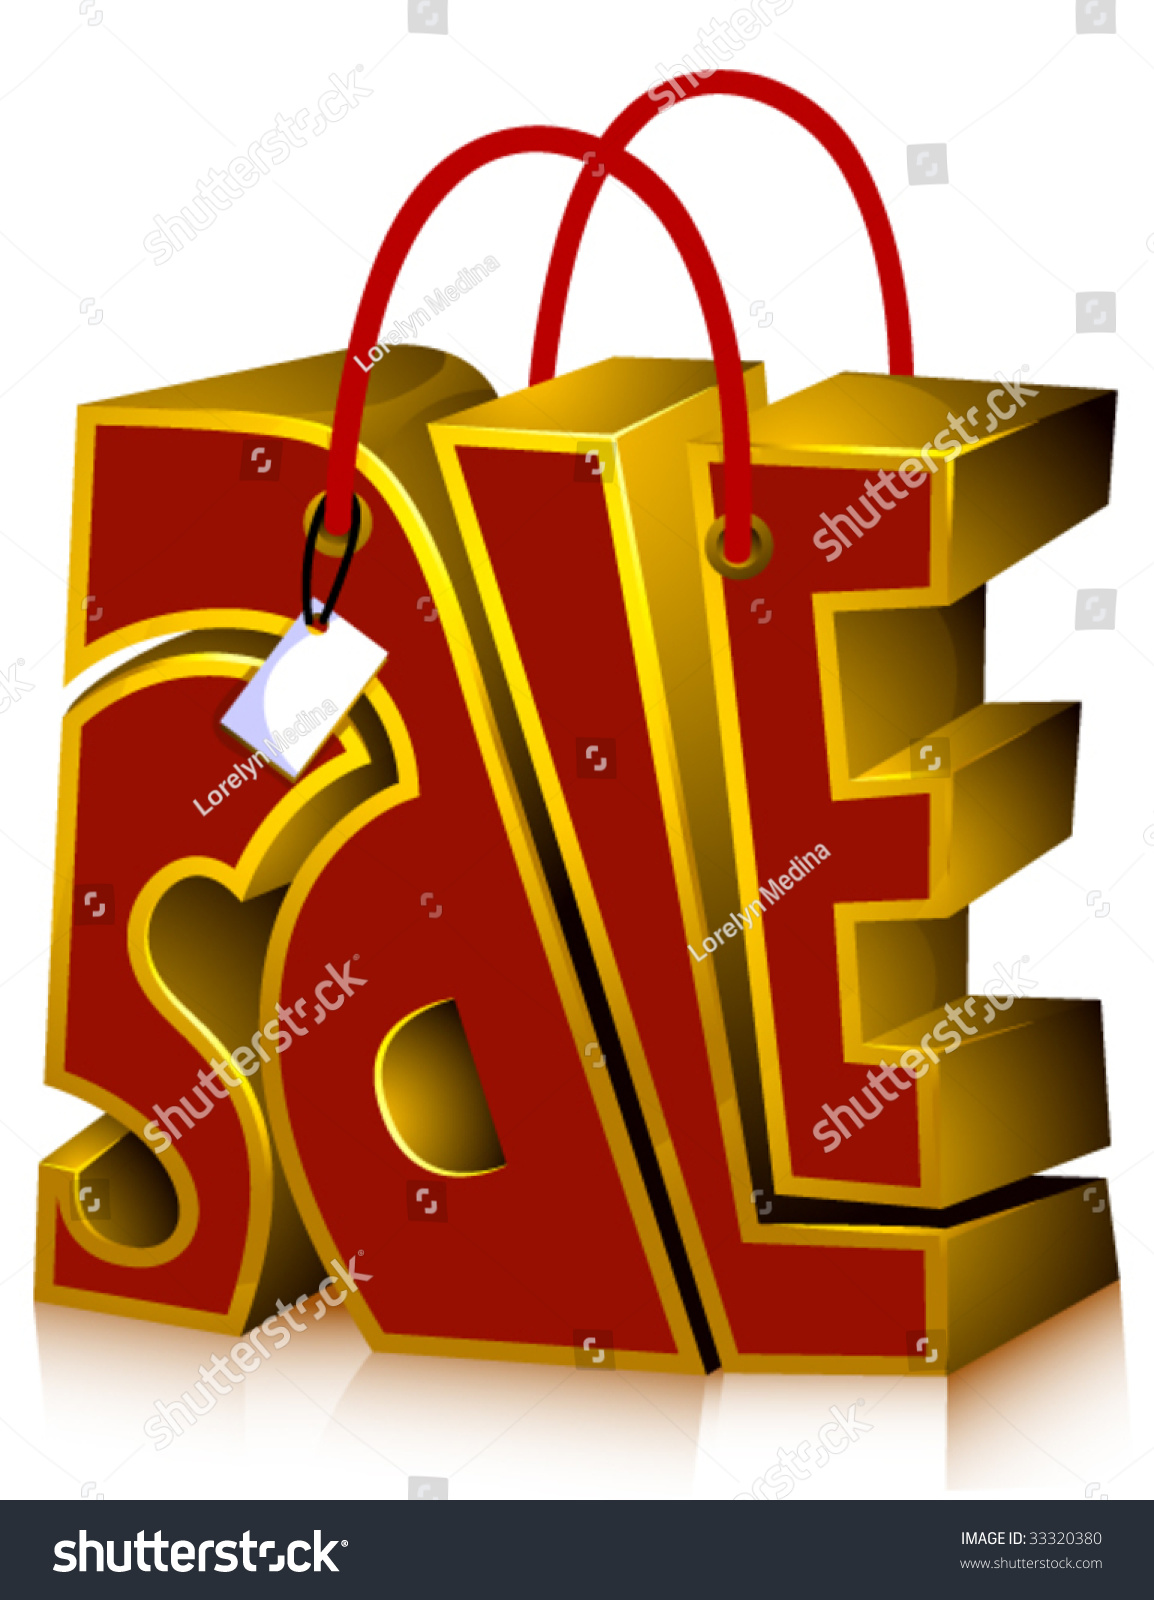 Sale Shopping Bag Vector Stock Vector 33320380 - Shutterstock